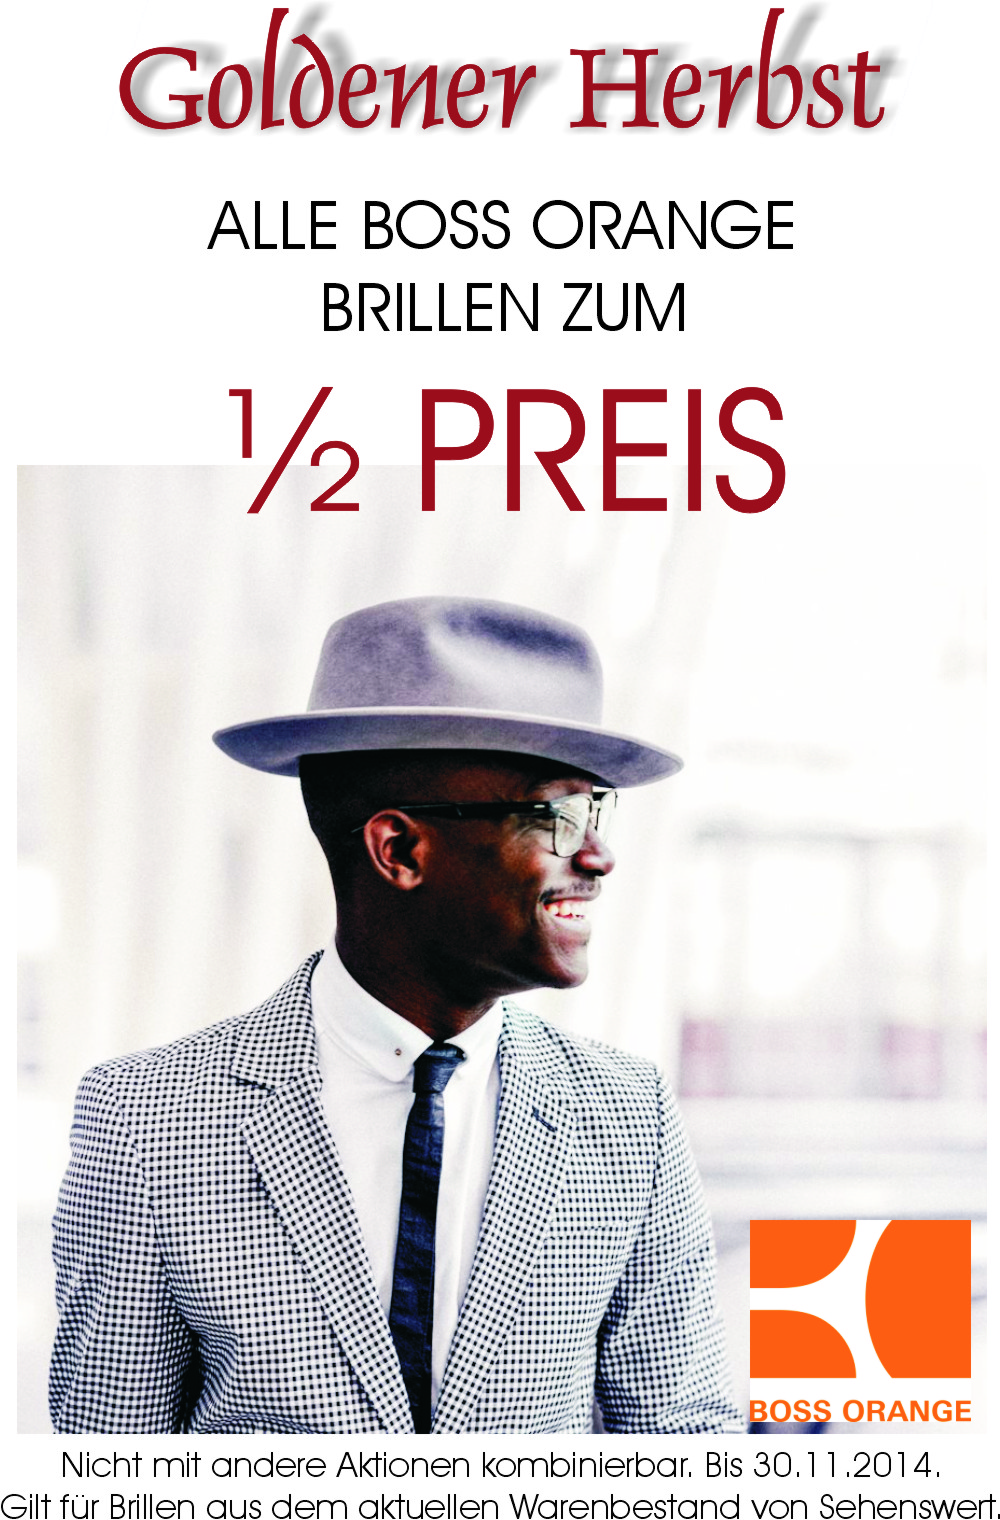 Herbstaktion 50% auf alle BOSS ORANGE Brillen